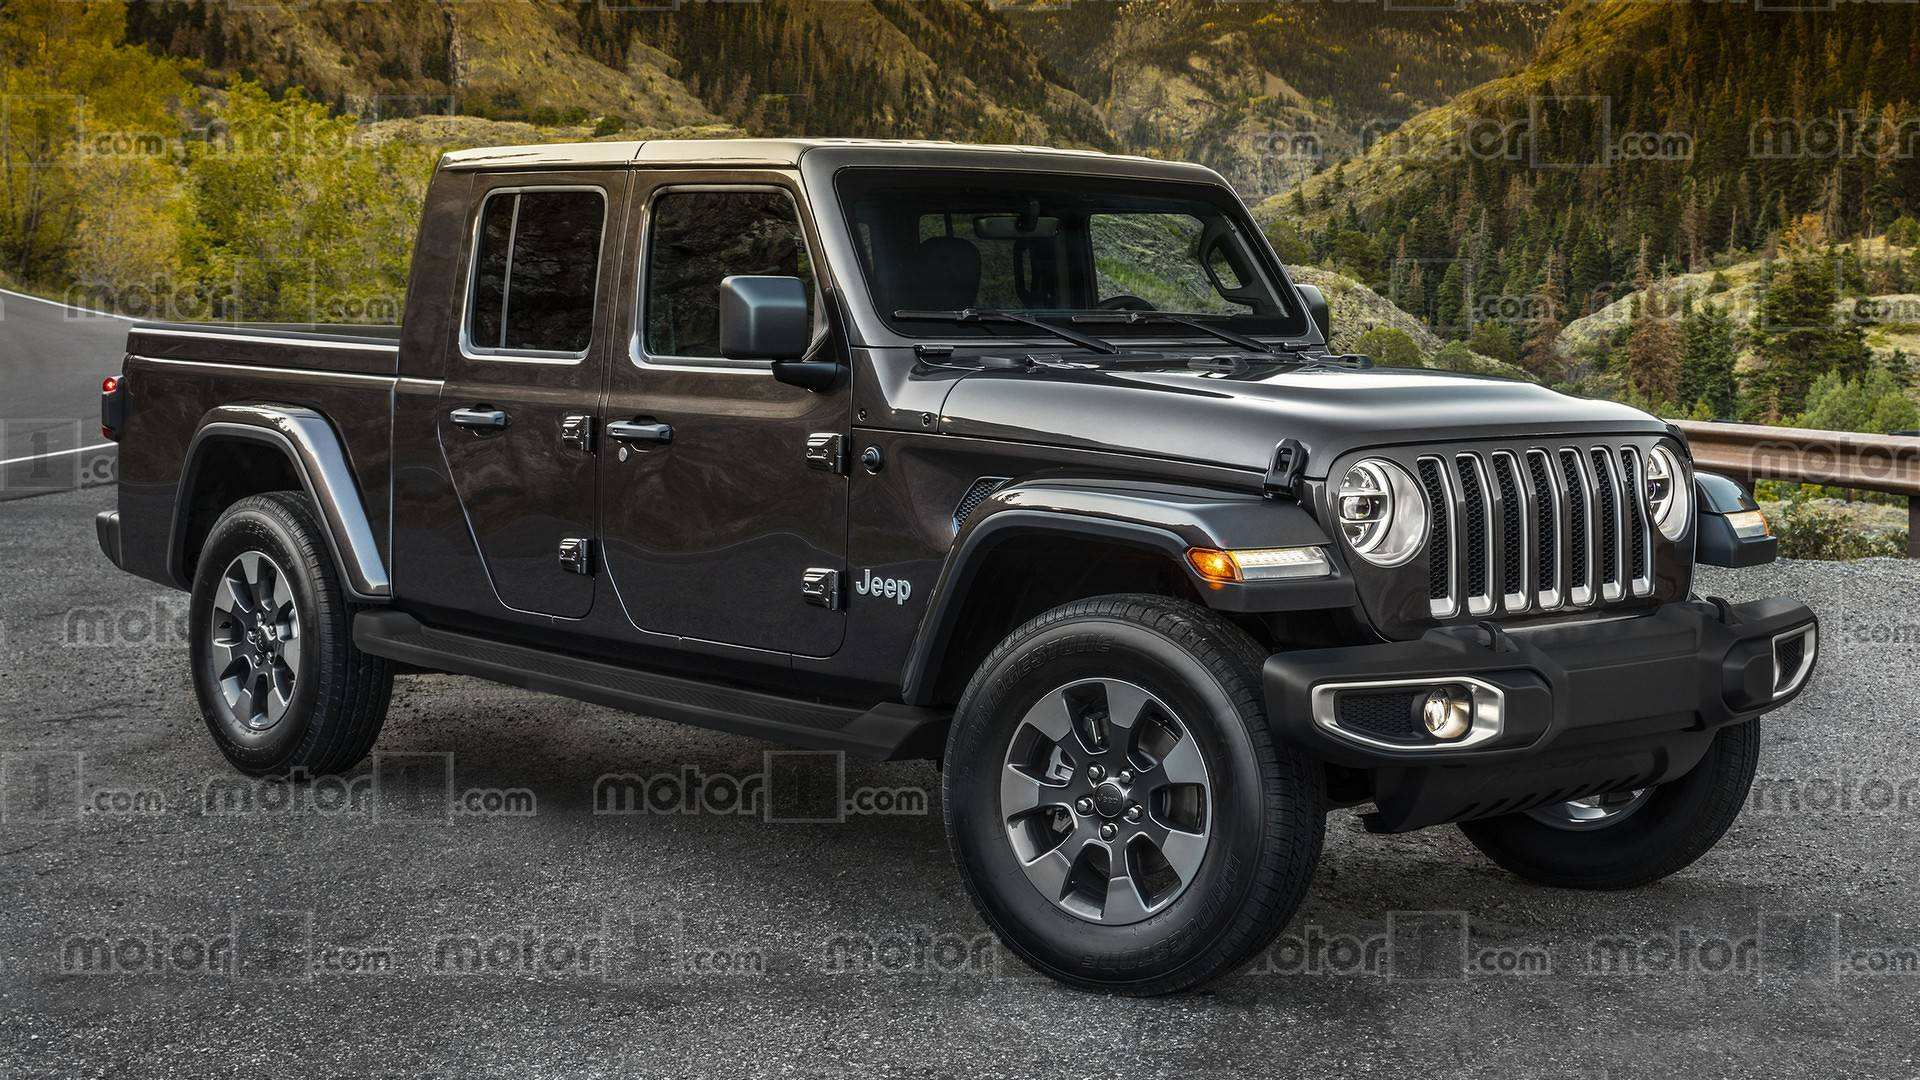 60 Concept of 2019 Jeep Truck Interior Exterior and Interior by 2019 Jeep Truck Interior